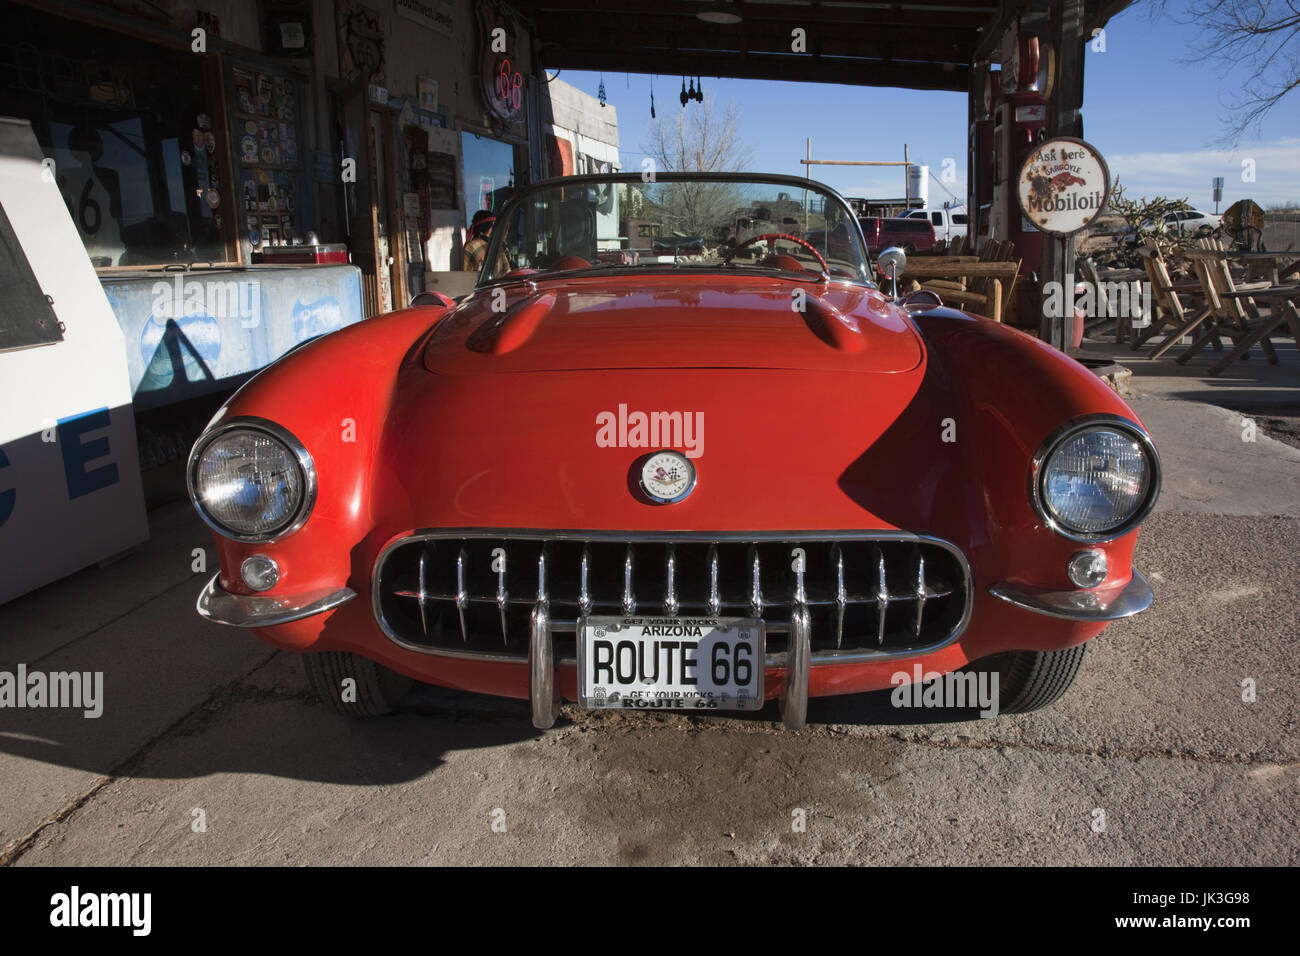 USA, Arizona, Hackberry, RT 66 Stadt, alte Rt 66 Visitor Center und Corvette Sportwagen Stockbild